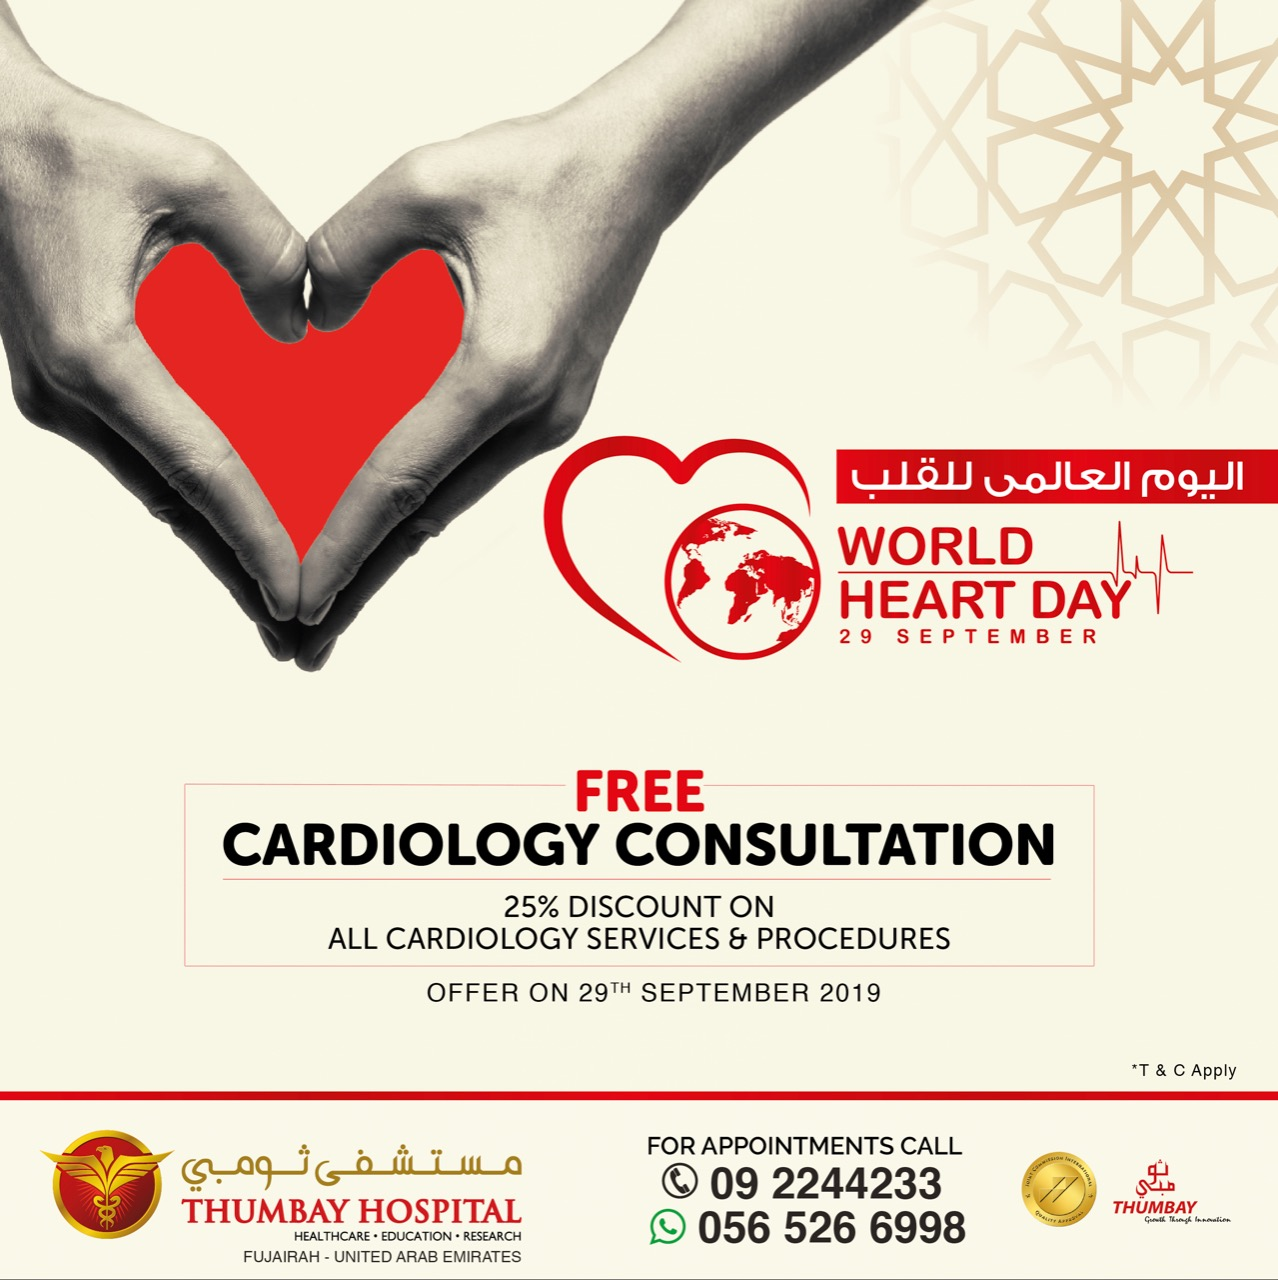 Free Cardiologist Consultation at Thumbay Hospital Fujairah on 'World Heart Day'